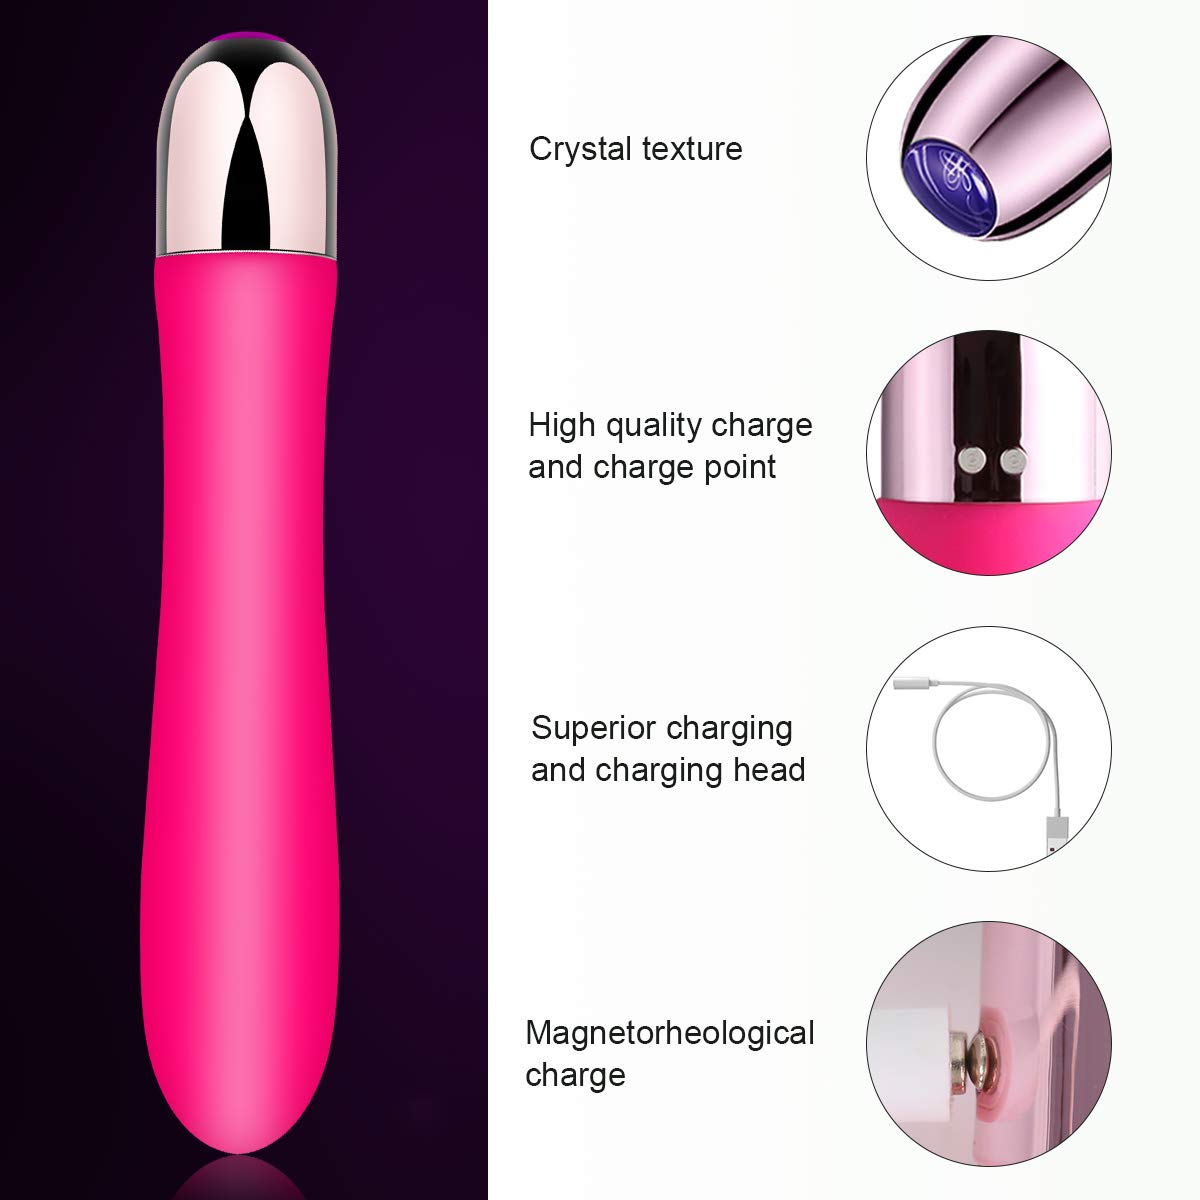 Mini Rechargeable clitoris g-spot vibrator for women - Ultra Soft bendable silicone dildo adult sex toy -offers healthy vibration patterns.